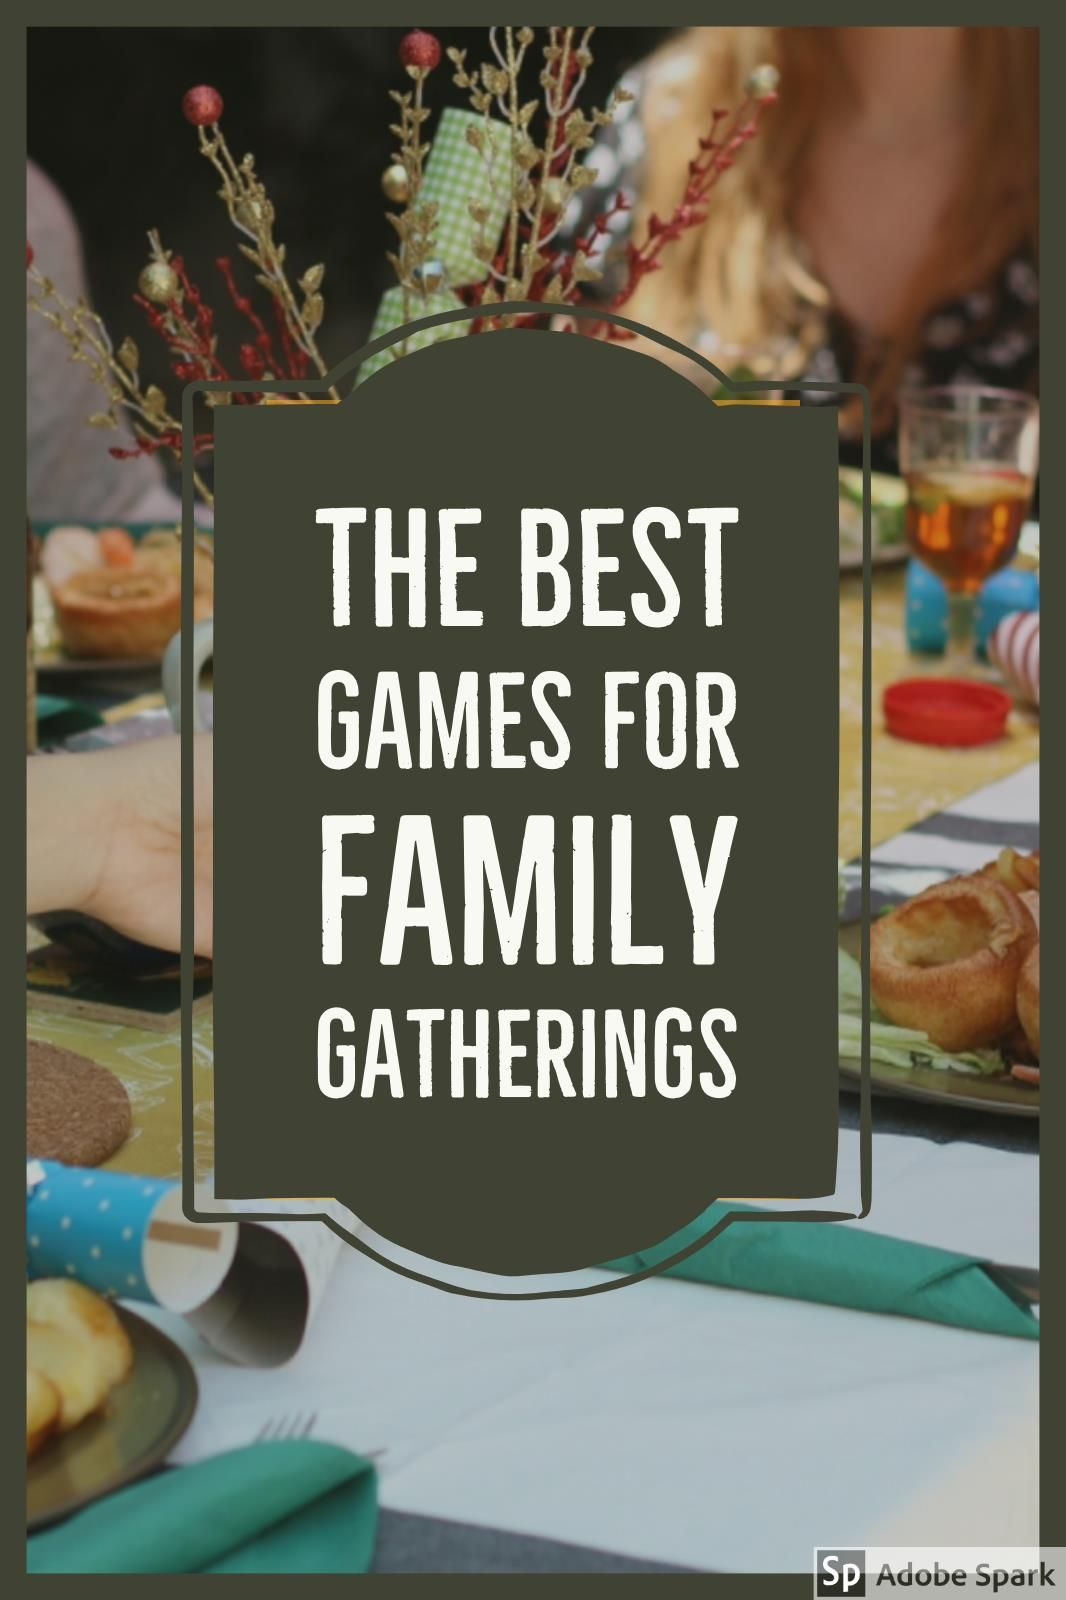 11 Fun + easy cards games for kids and adults! It's